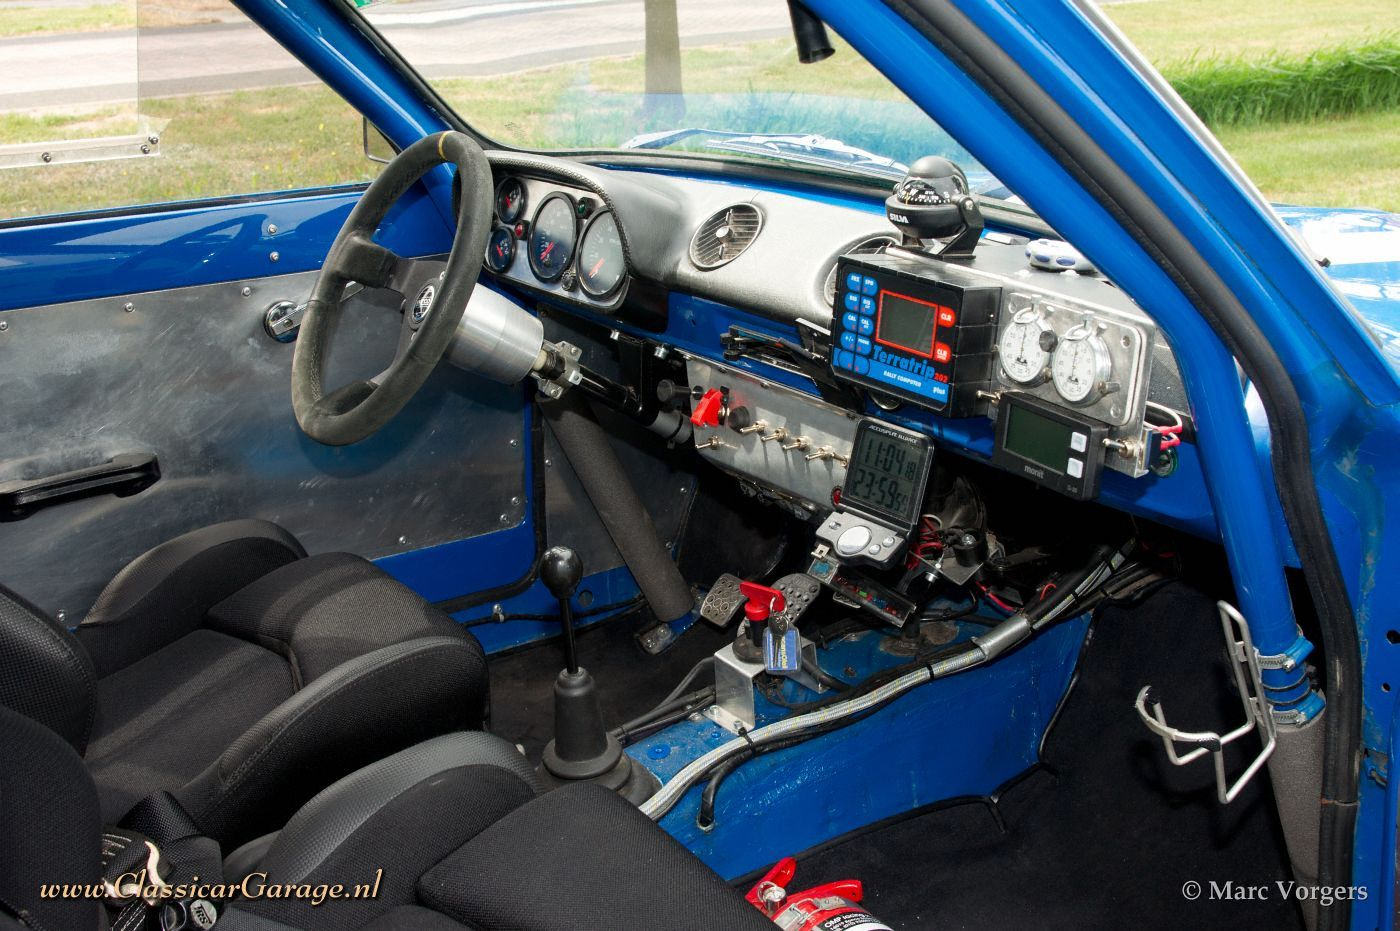 ford escort 1600 mexico rally car 1972 details. Black Bedroom Furniture Sets. Home Design Ideas